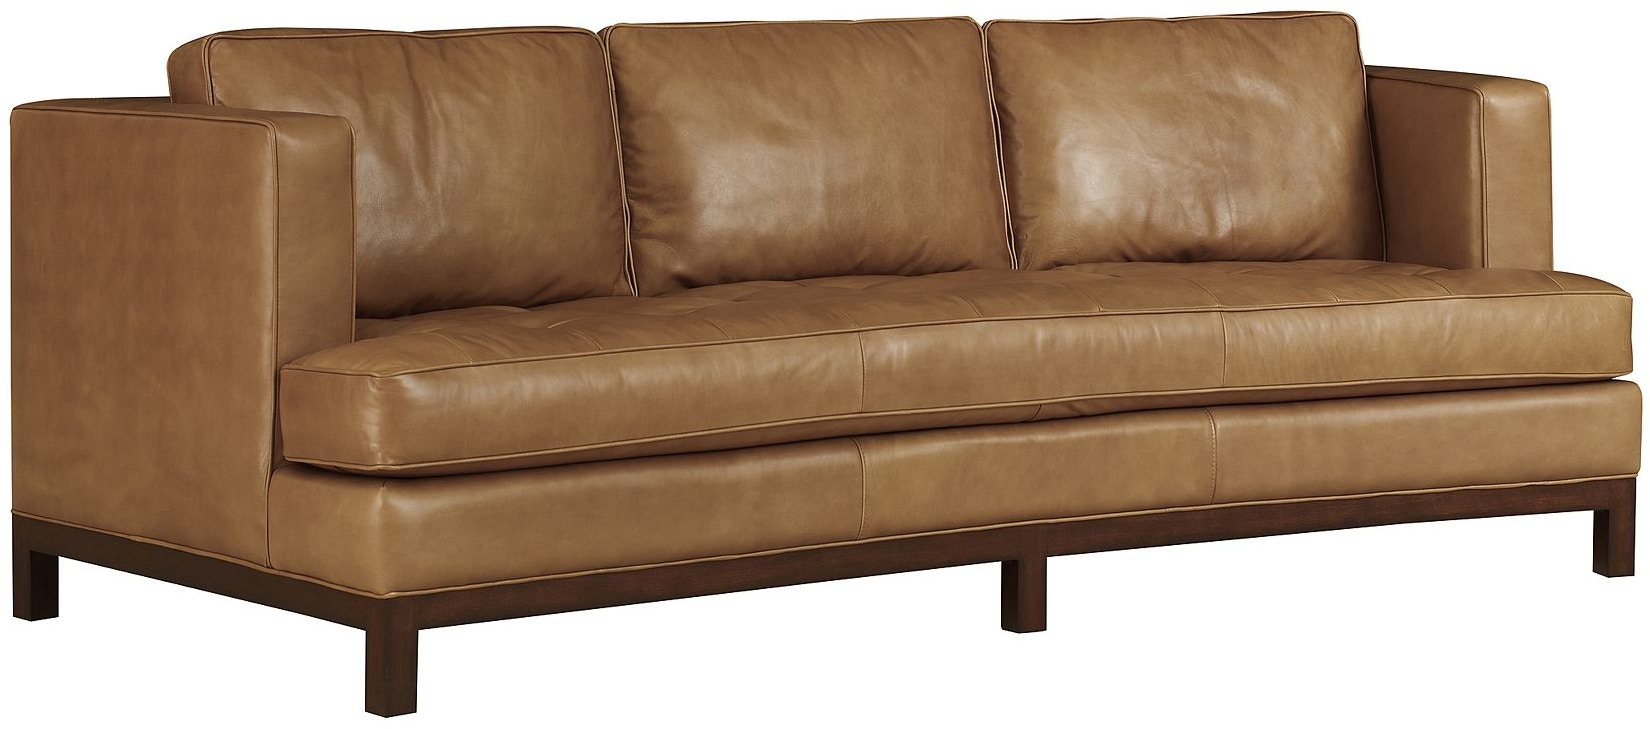 Henredon Furniture Il8834 C Living Room Henredon Leather Company Crescent Sofa